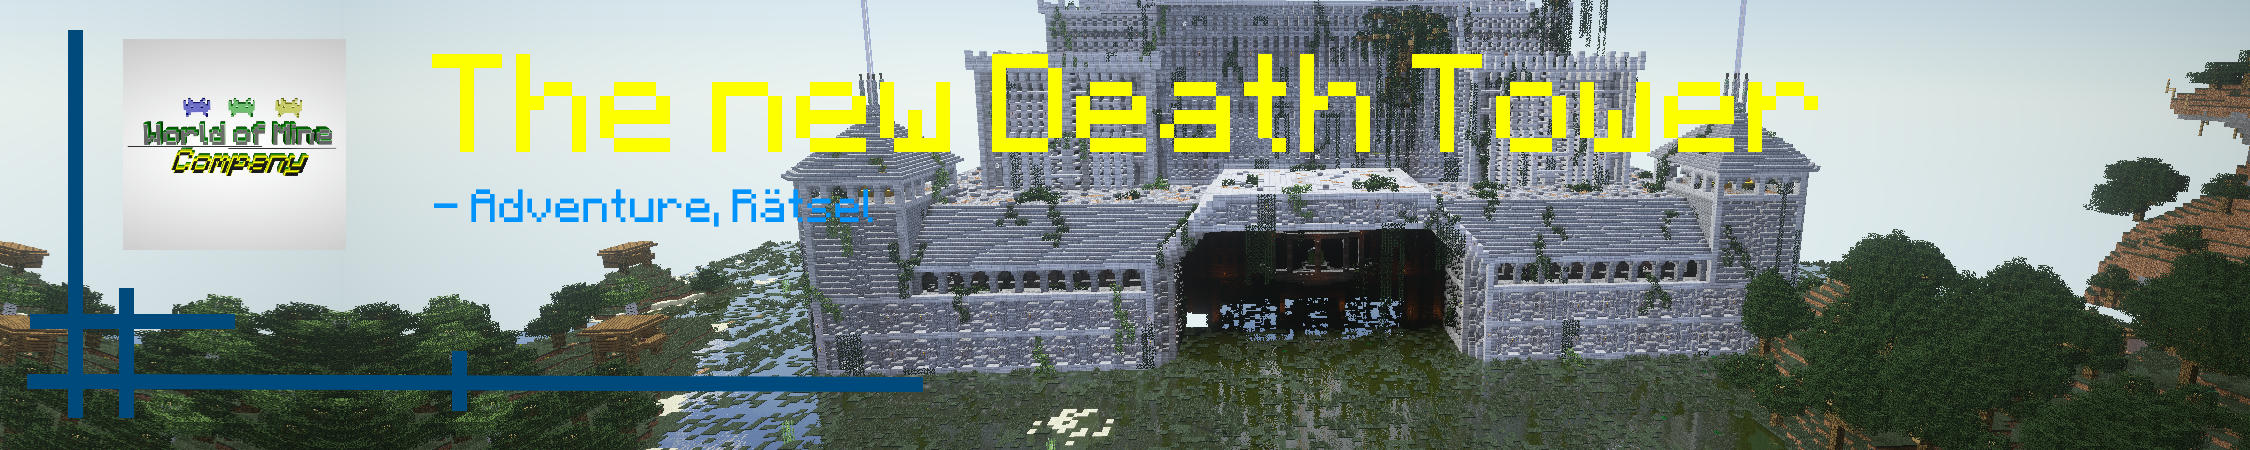 The new Death Tower